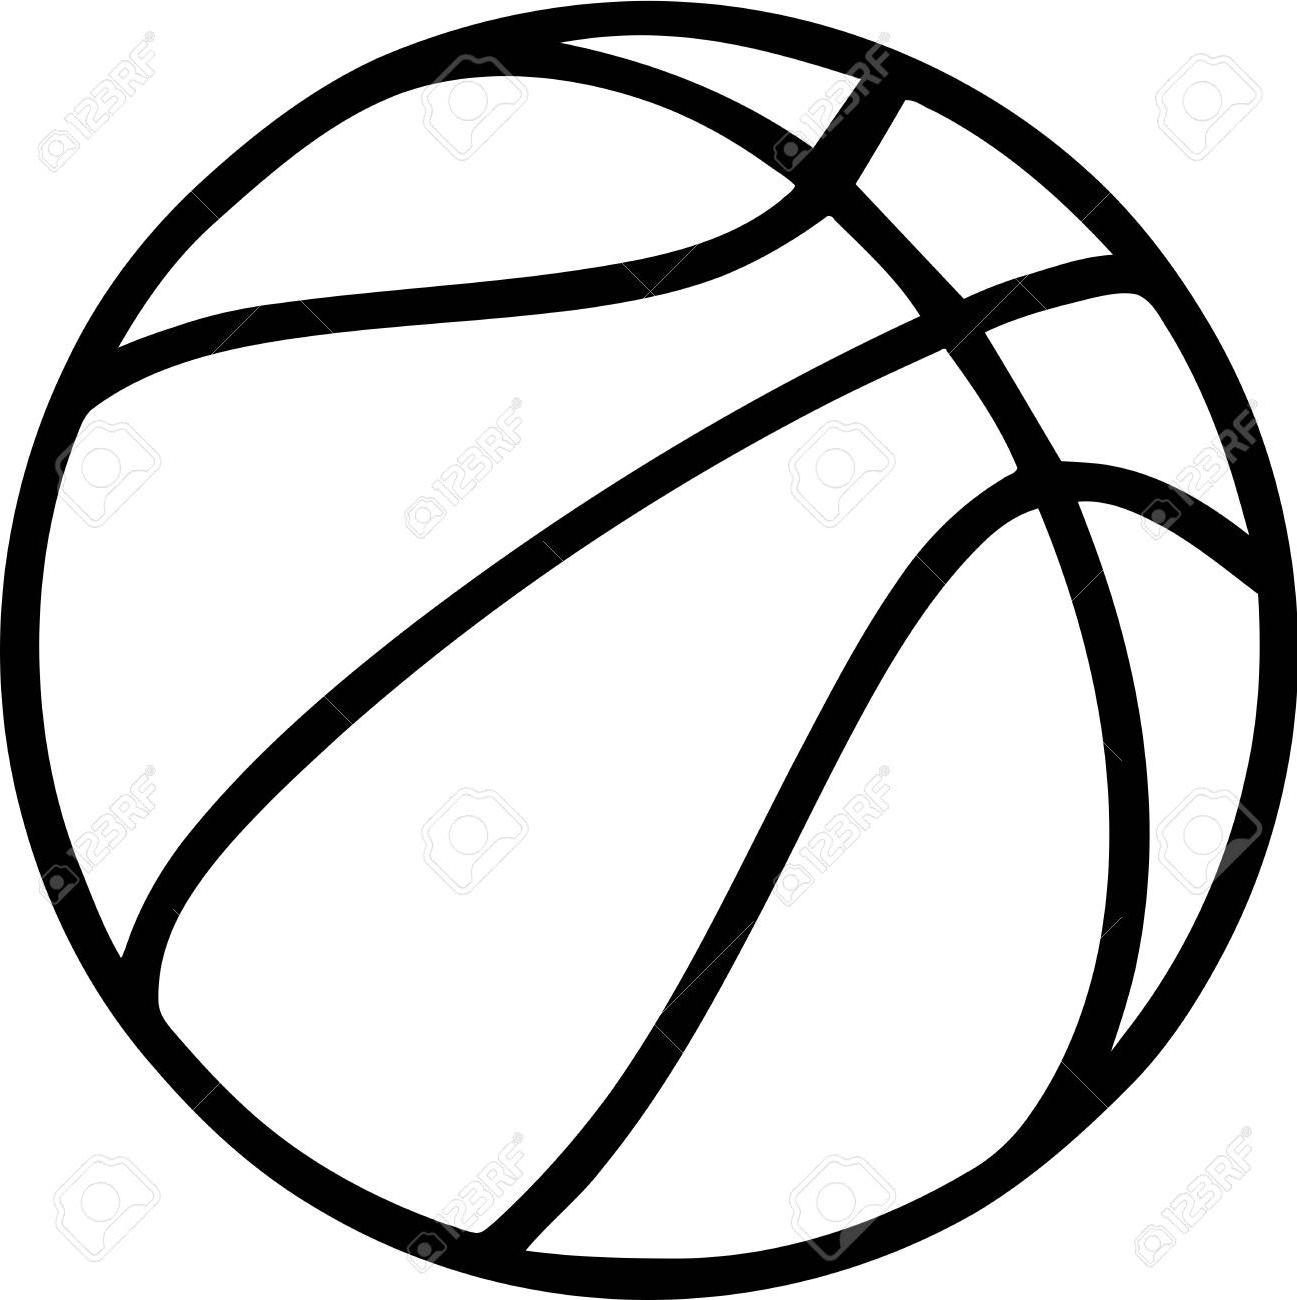 1297x1300 Best Hd Basketball Outline On White Background Stock Vector Image